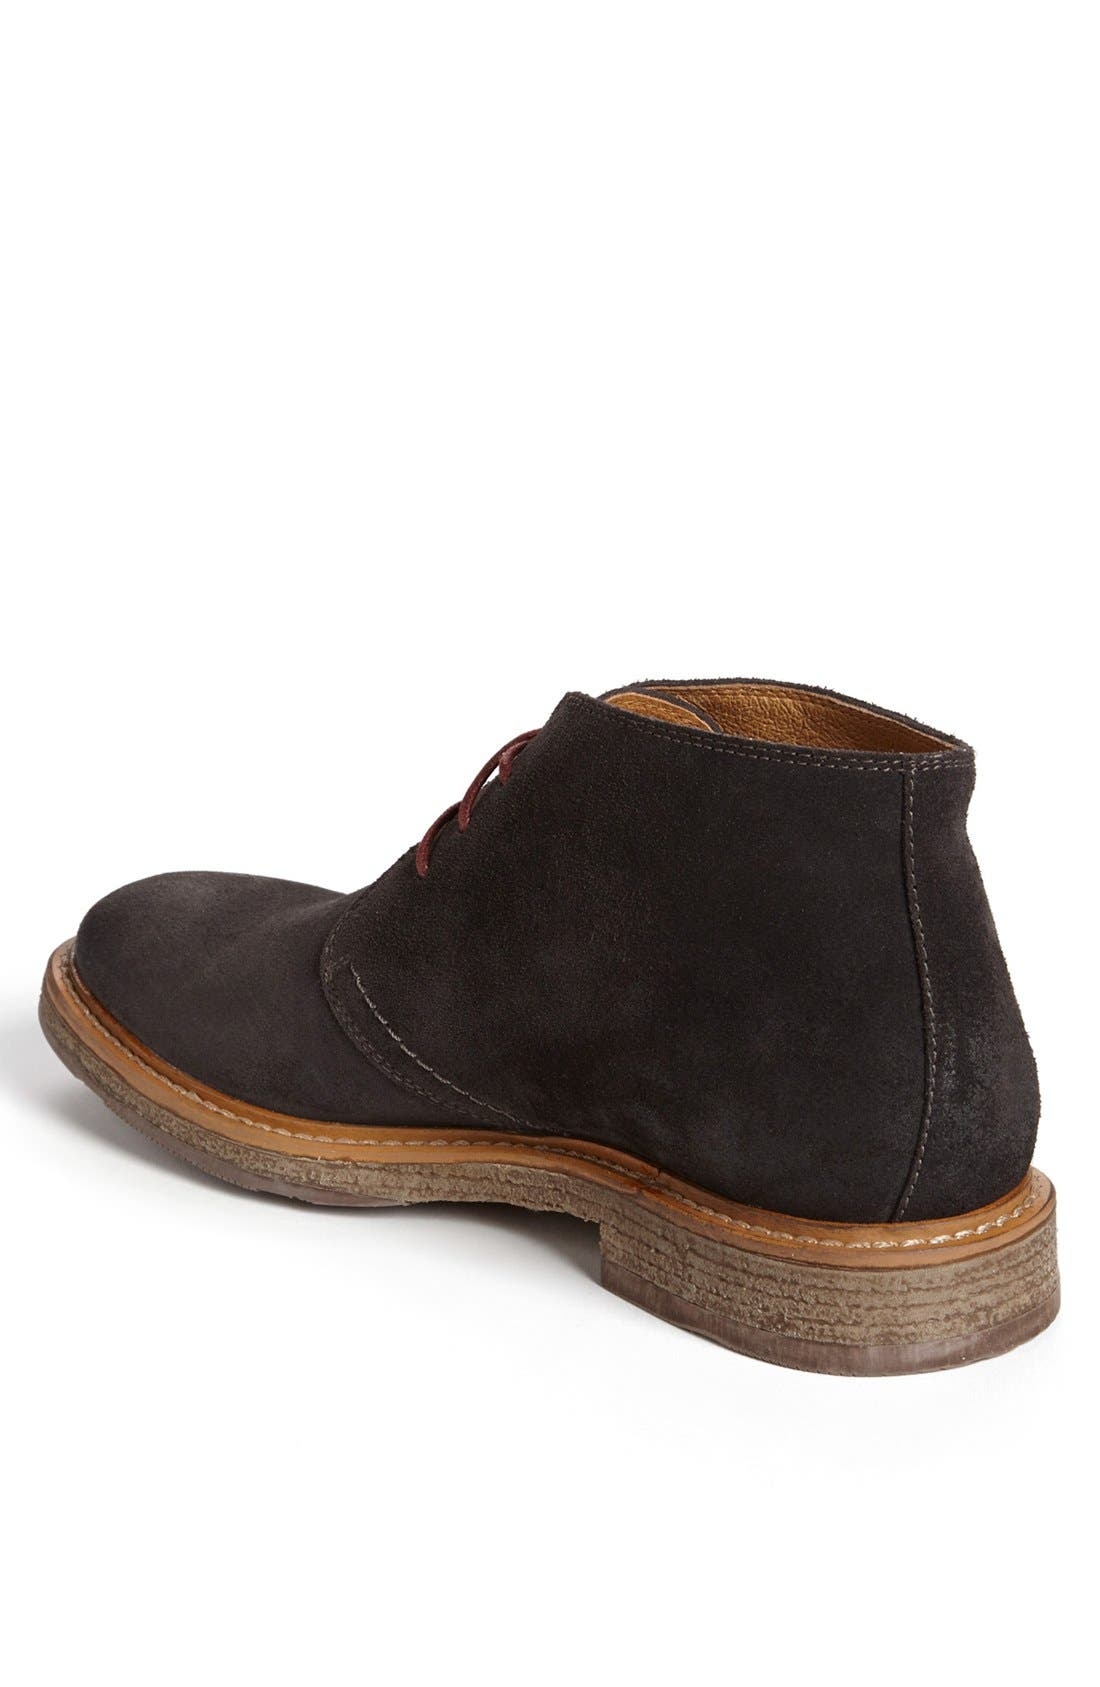 'Canyon' Chukka Boot,                             Alternate thumbnail 7, color,